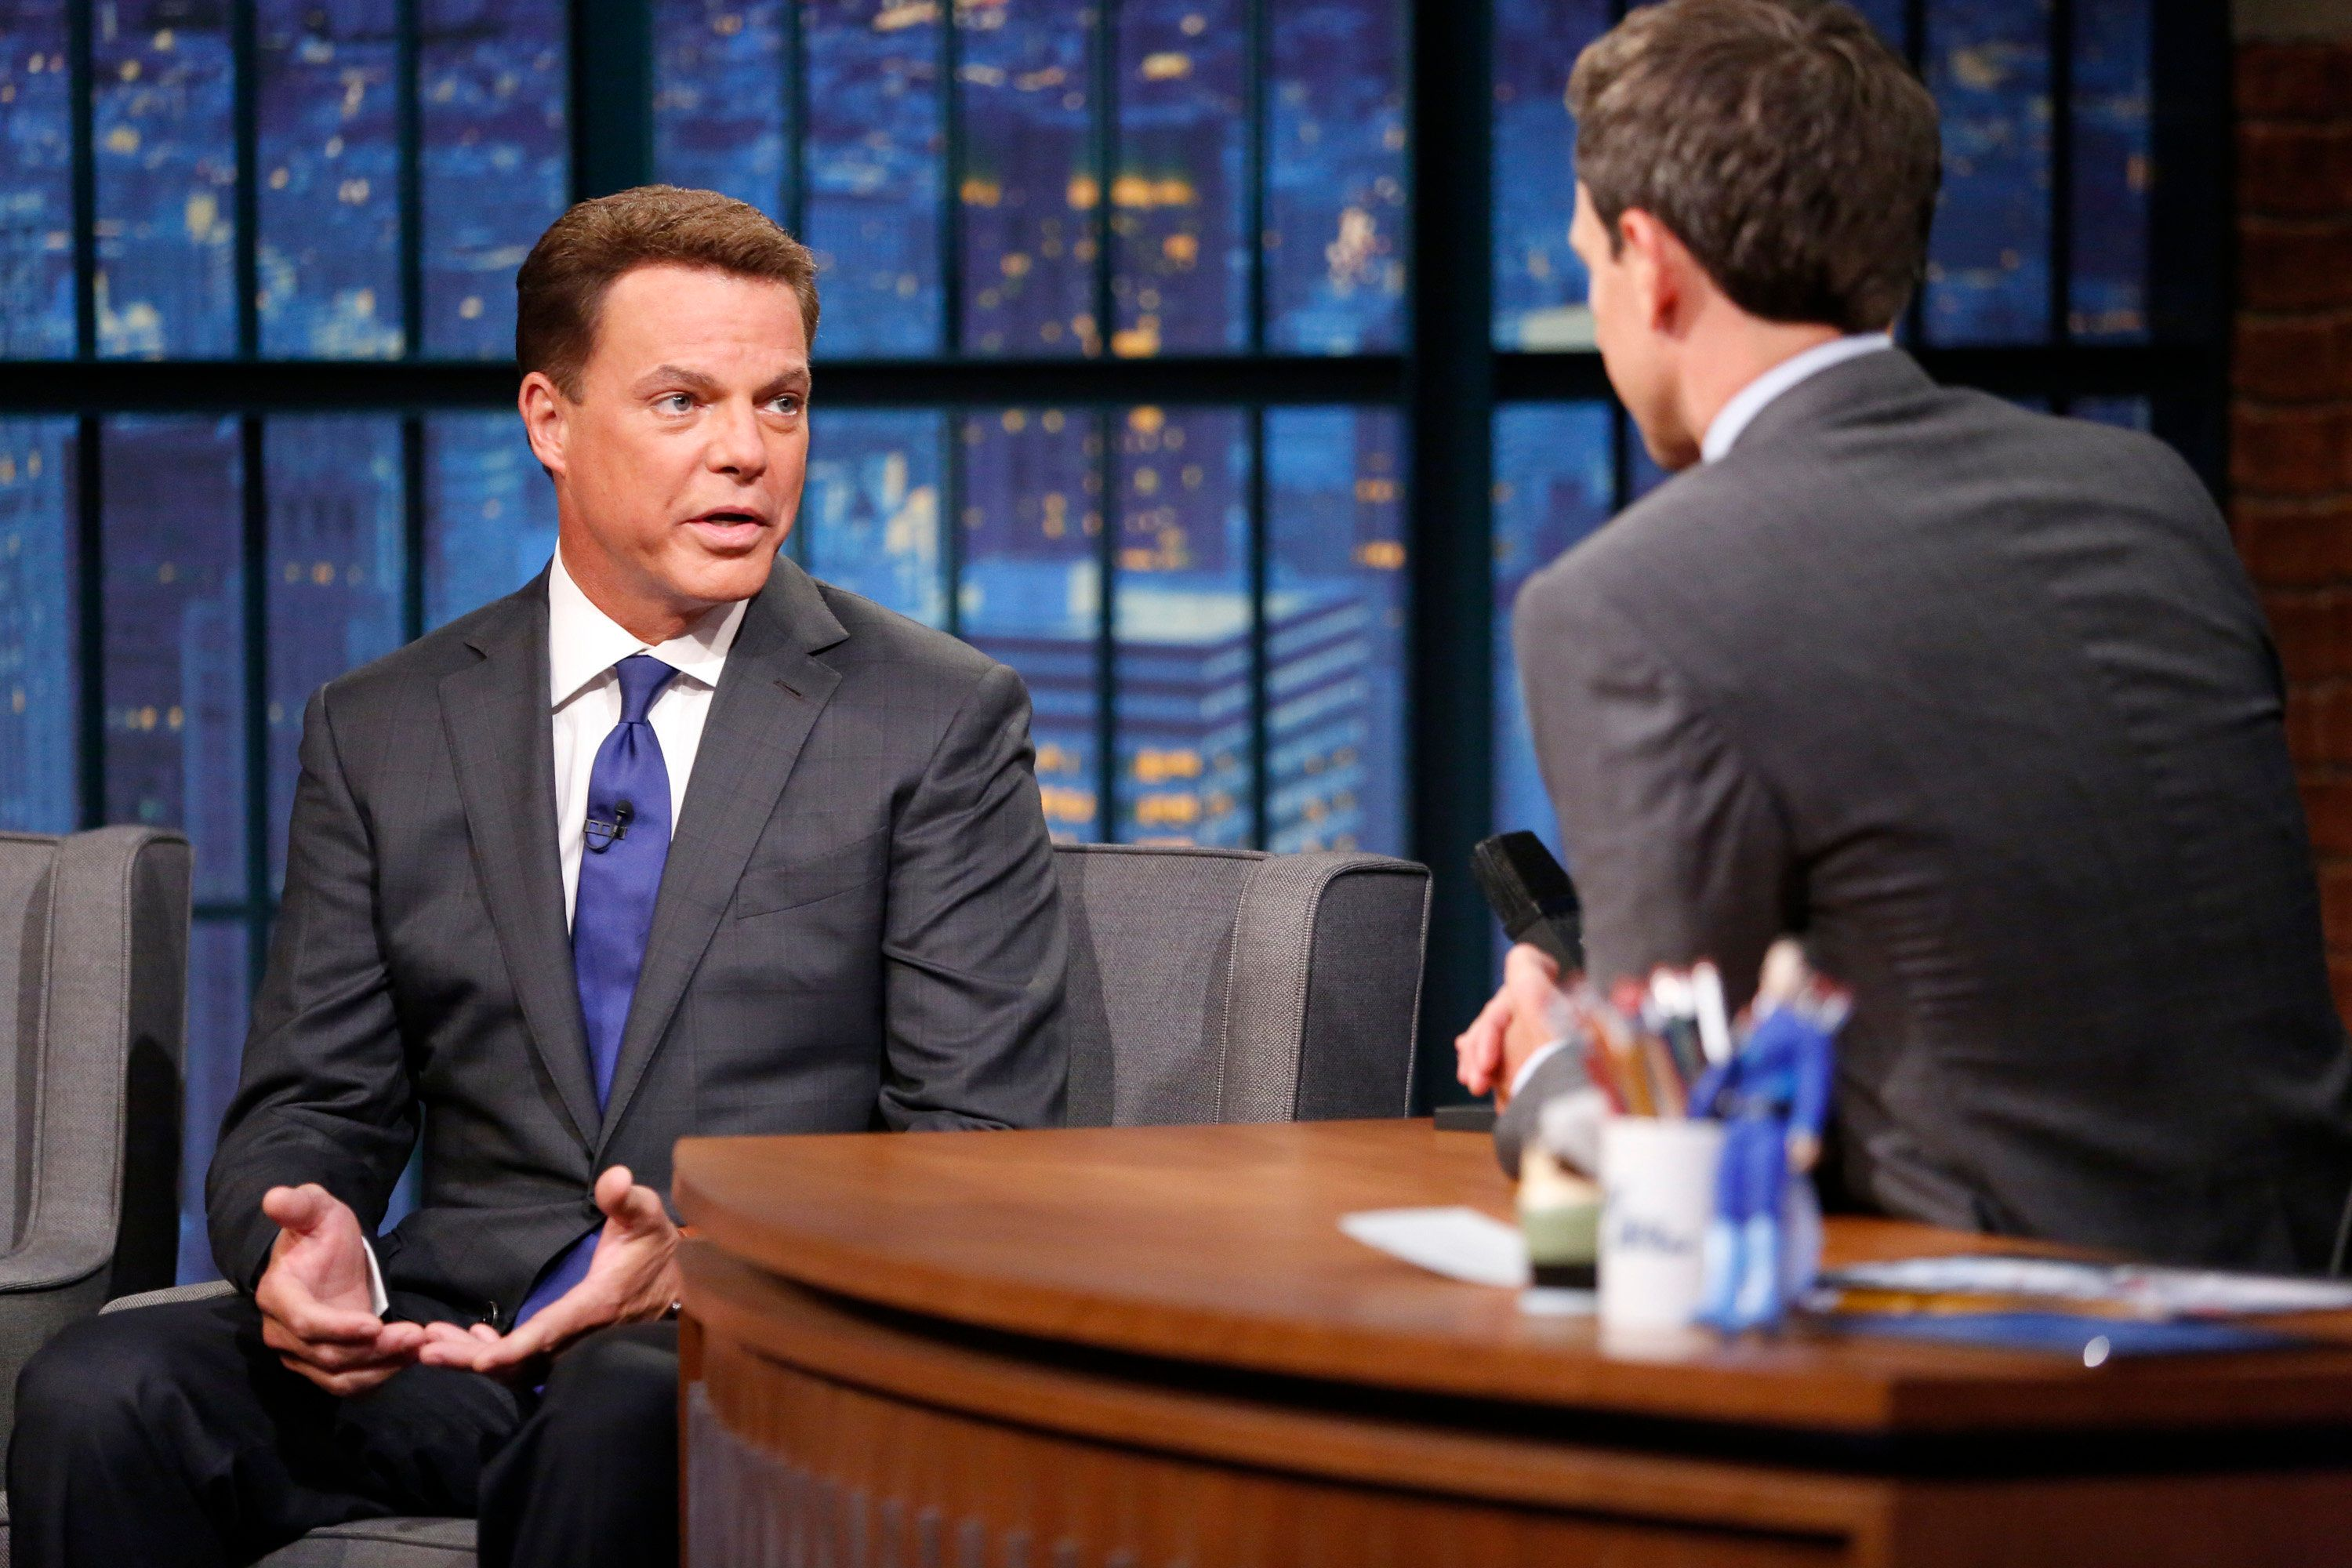 LATE NIGHT WITH SETH MEYERS -- Episode 248 -- Pictured: (l-r) Fox New's Shepard Smith during an interview with host Seth Meyers on August 17, 2015 -- (Photo by: Lloyd Bishop/NBC/NBCU Photo Bank via Getty Images)